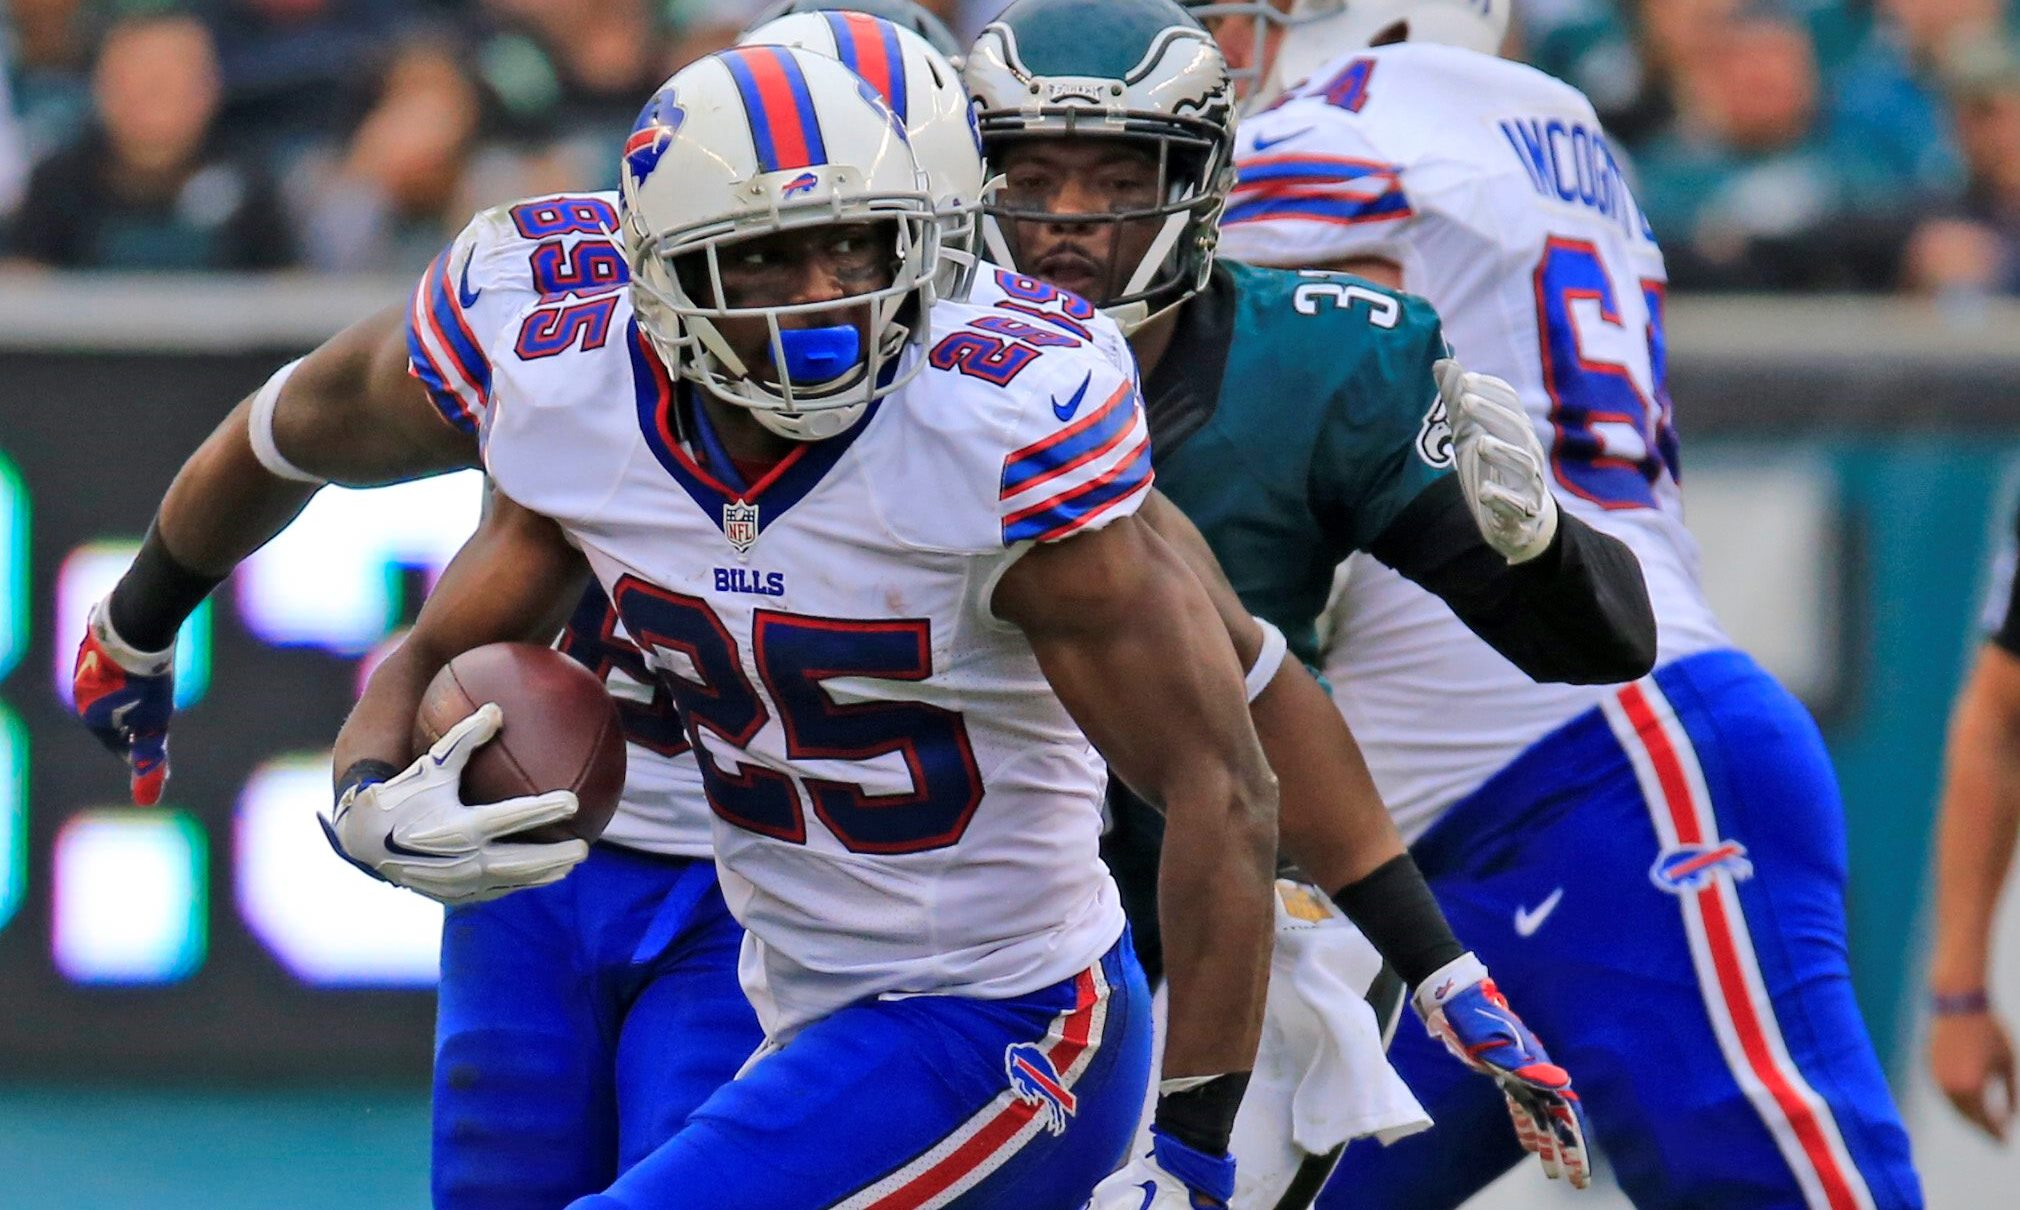 Buffalo Bills LeSean MCCoy runs against the Philadelphia Eagles during first-half action at Lincoln Financial Field on Dec. 13, 2015.	 Harry Scull Jr./Buffalo News